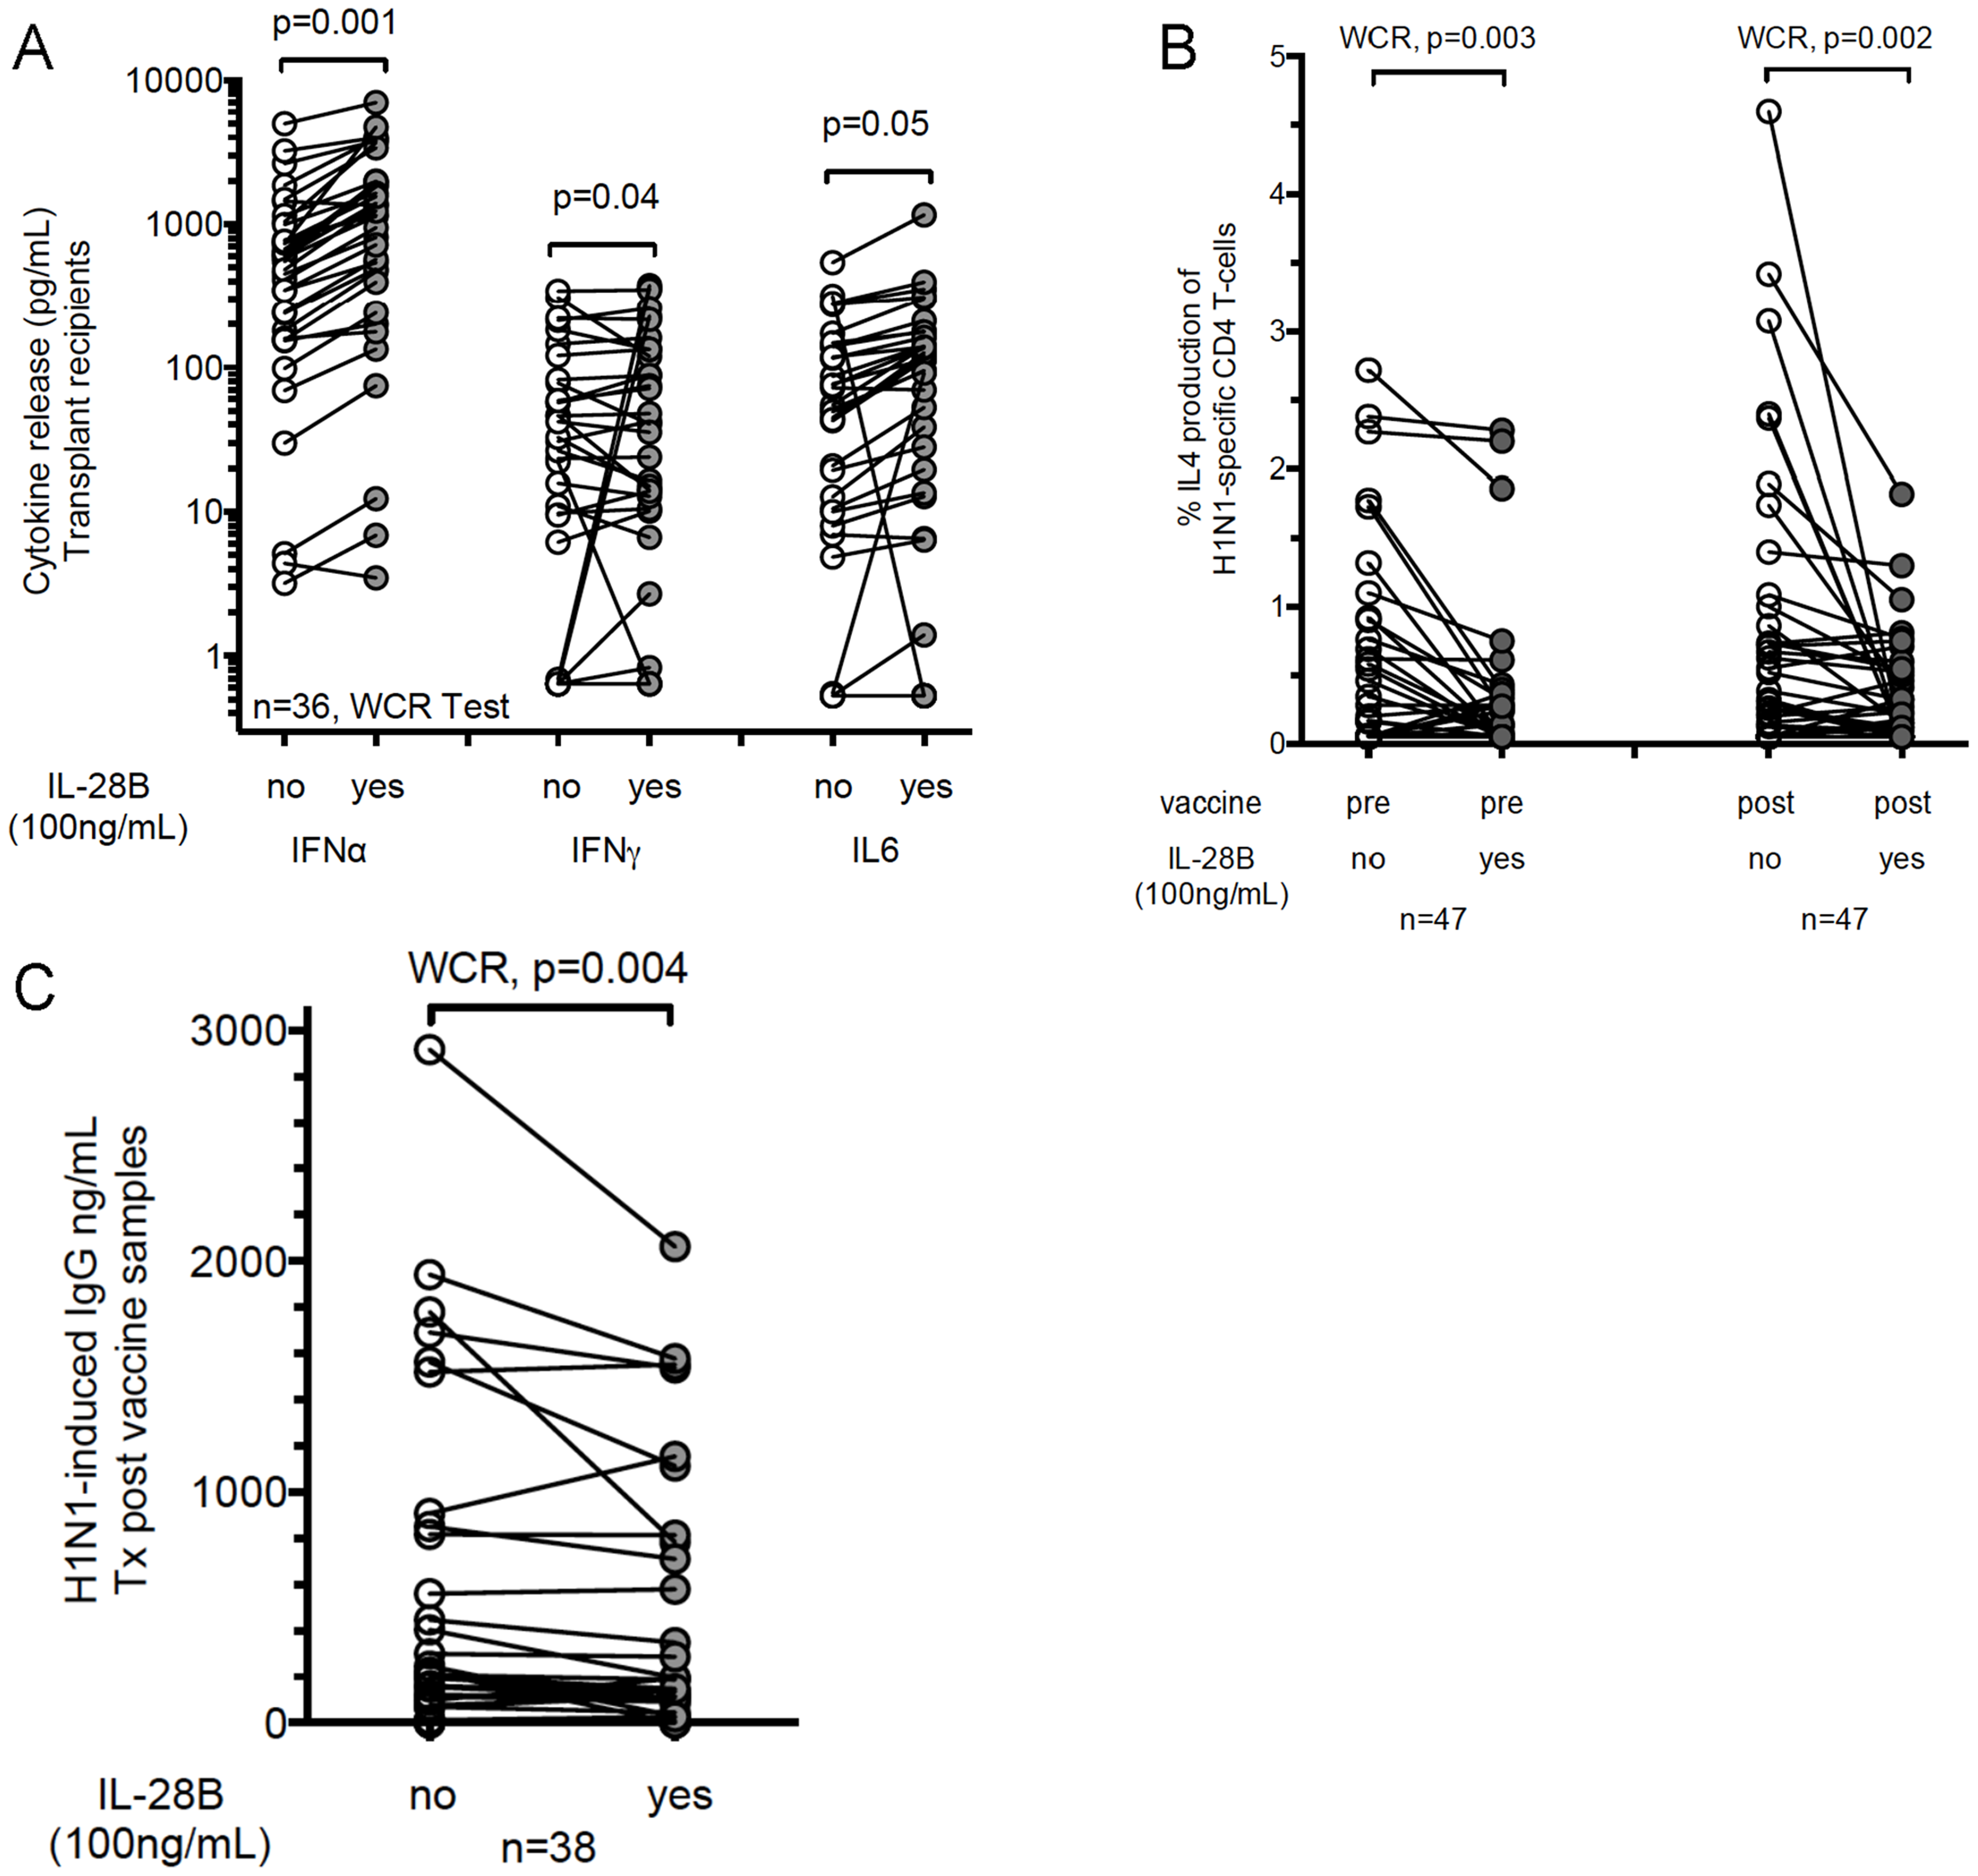 Recombinant IL-28B inhibits Influenza H1N1-induced Th2 response and B cell activation in transplant recipients.